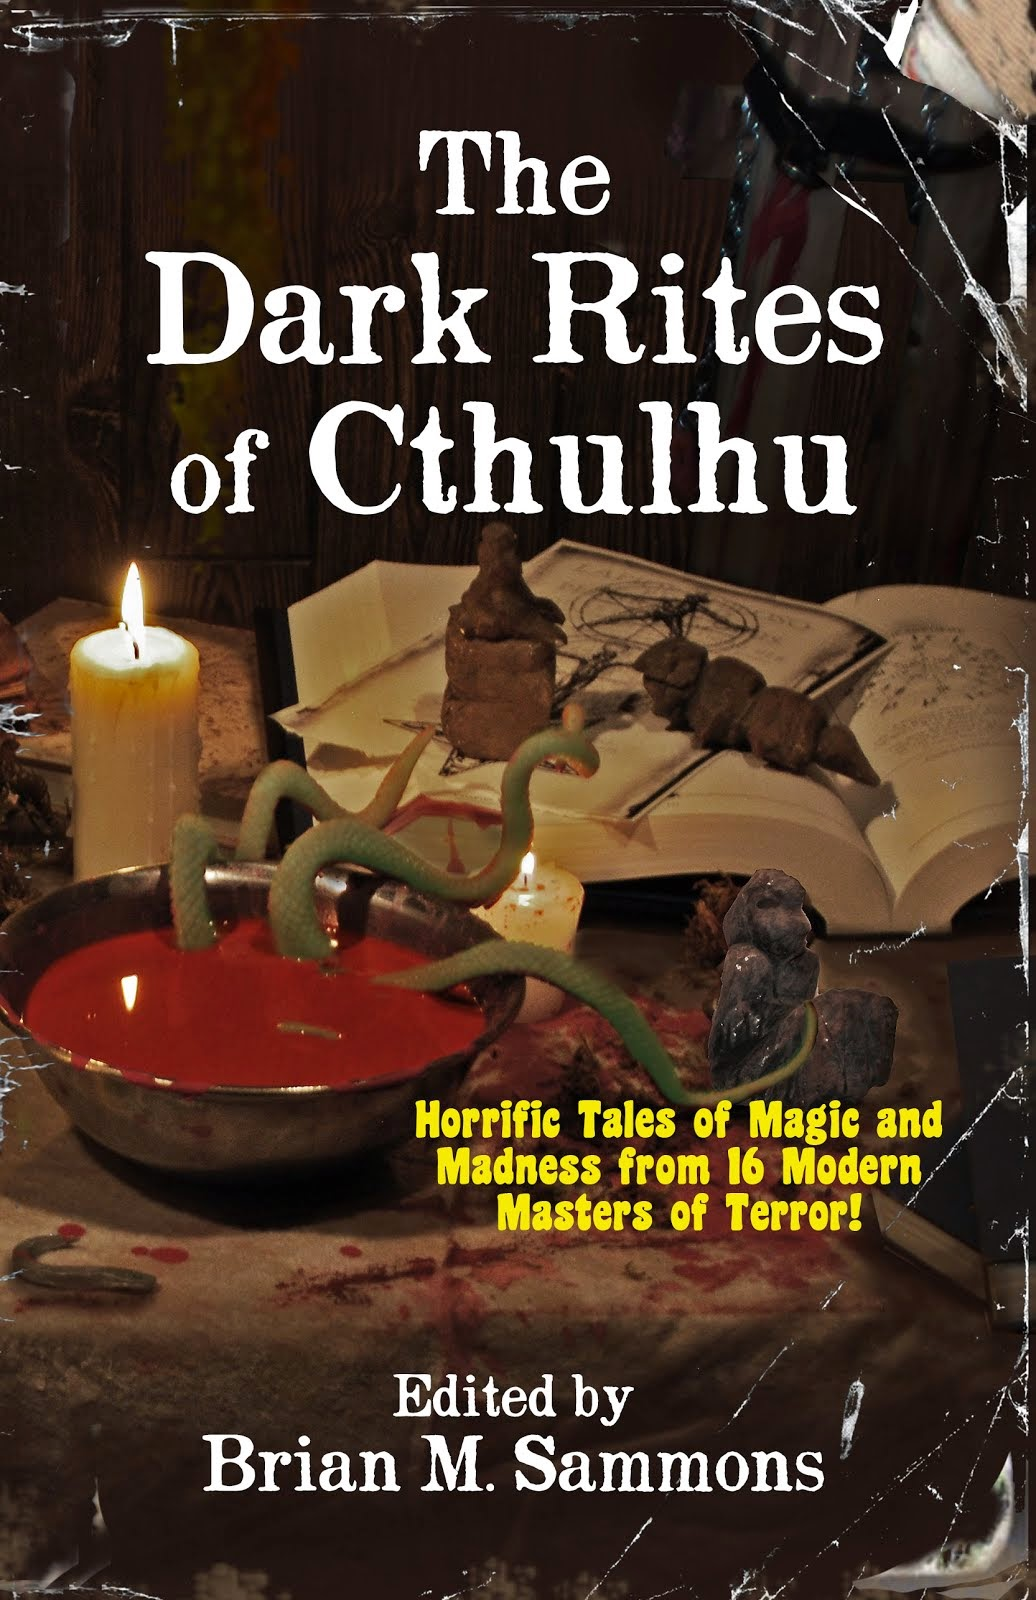 THE DARK RITES OF CTHULHU